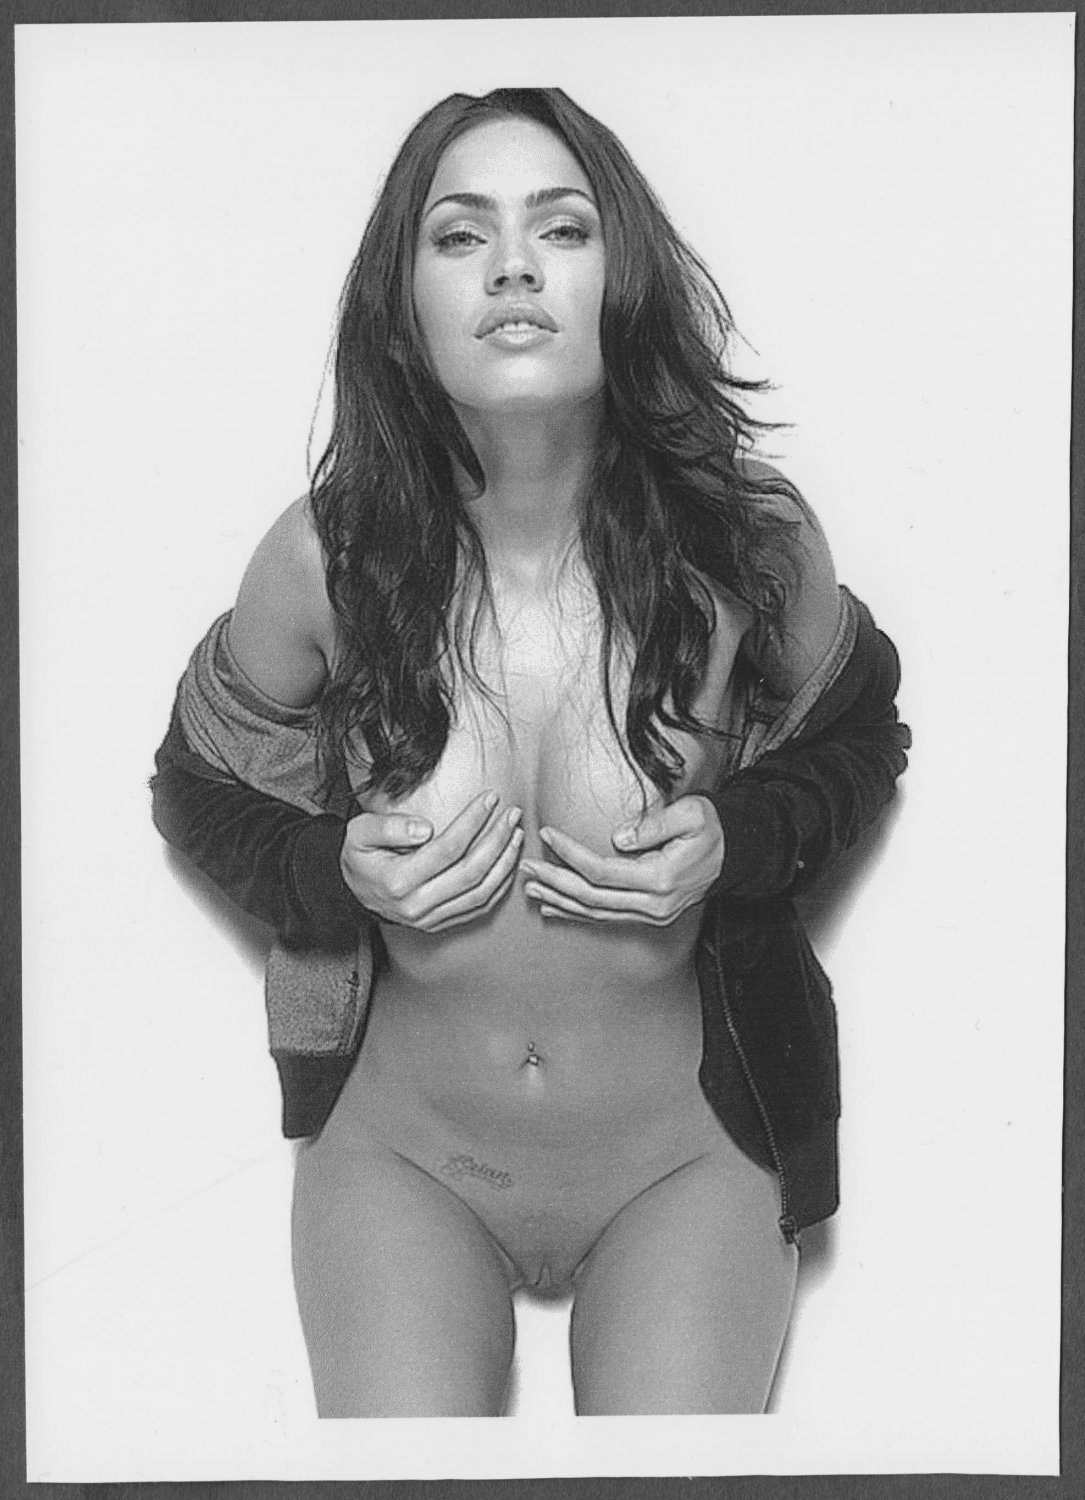 MEGAN FOX TOPLESS NUDE LARGE BREASTS SHAVED PUSSY NEW REPRINT 5X7  #15